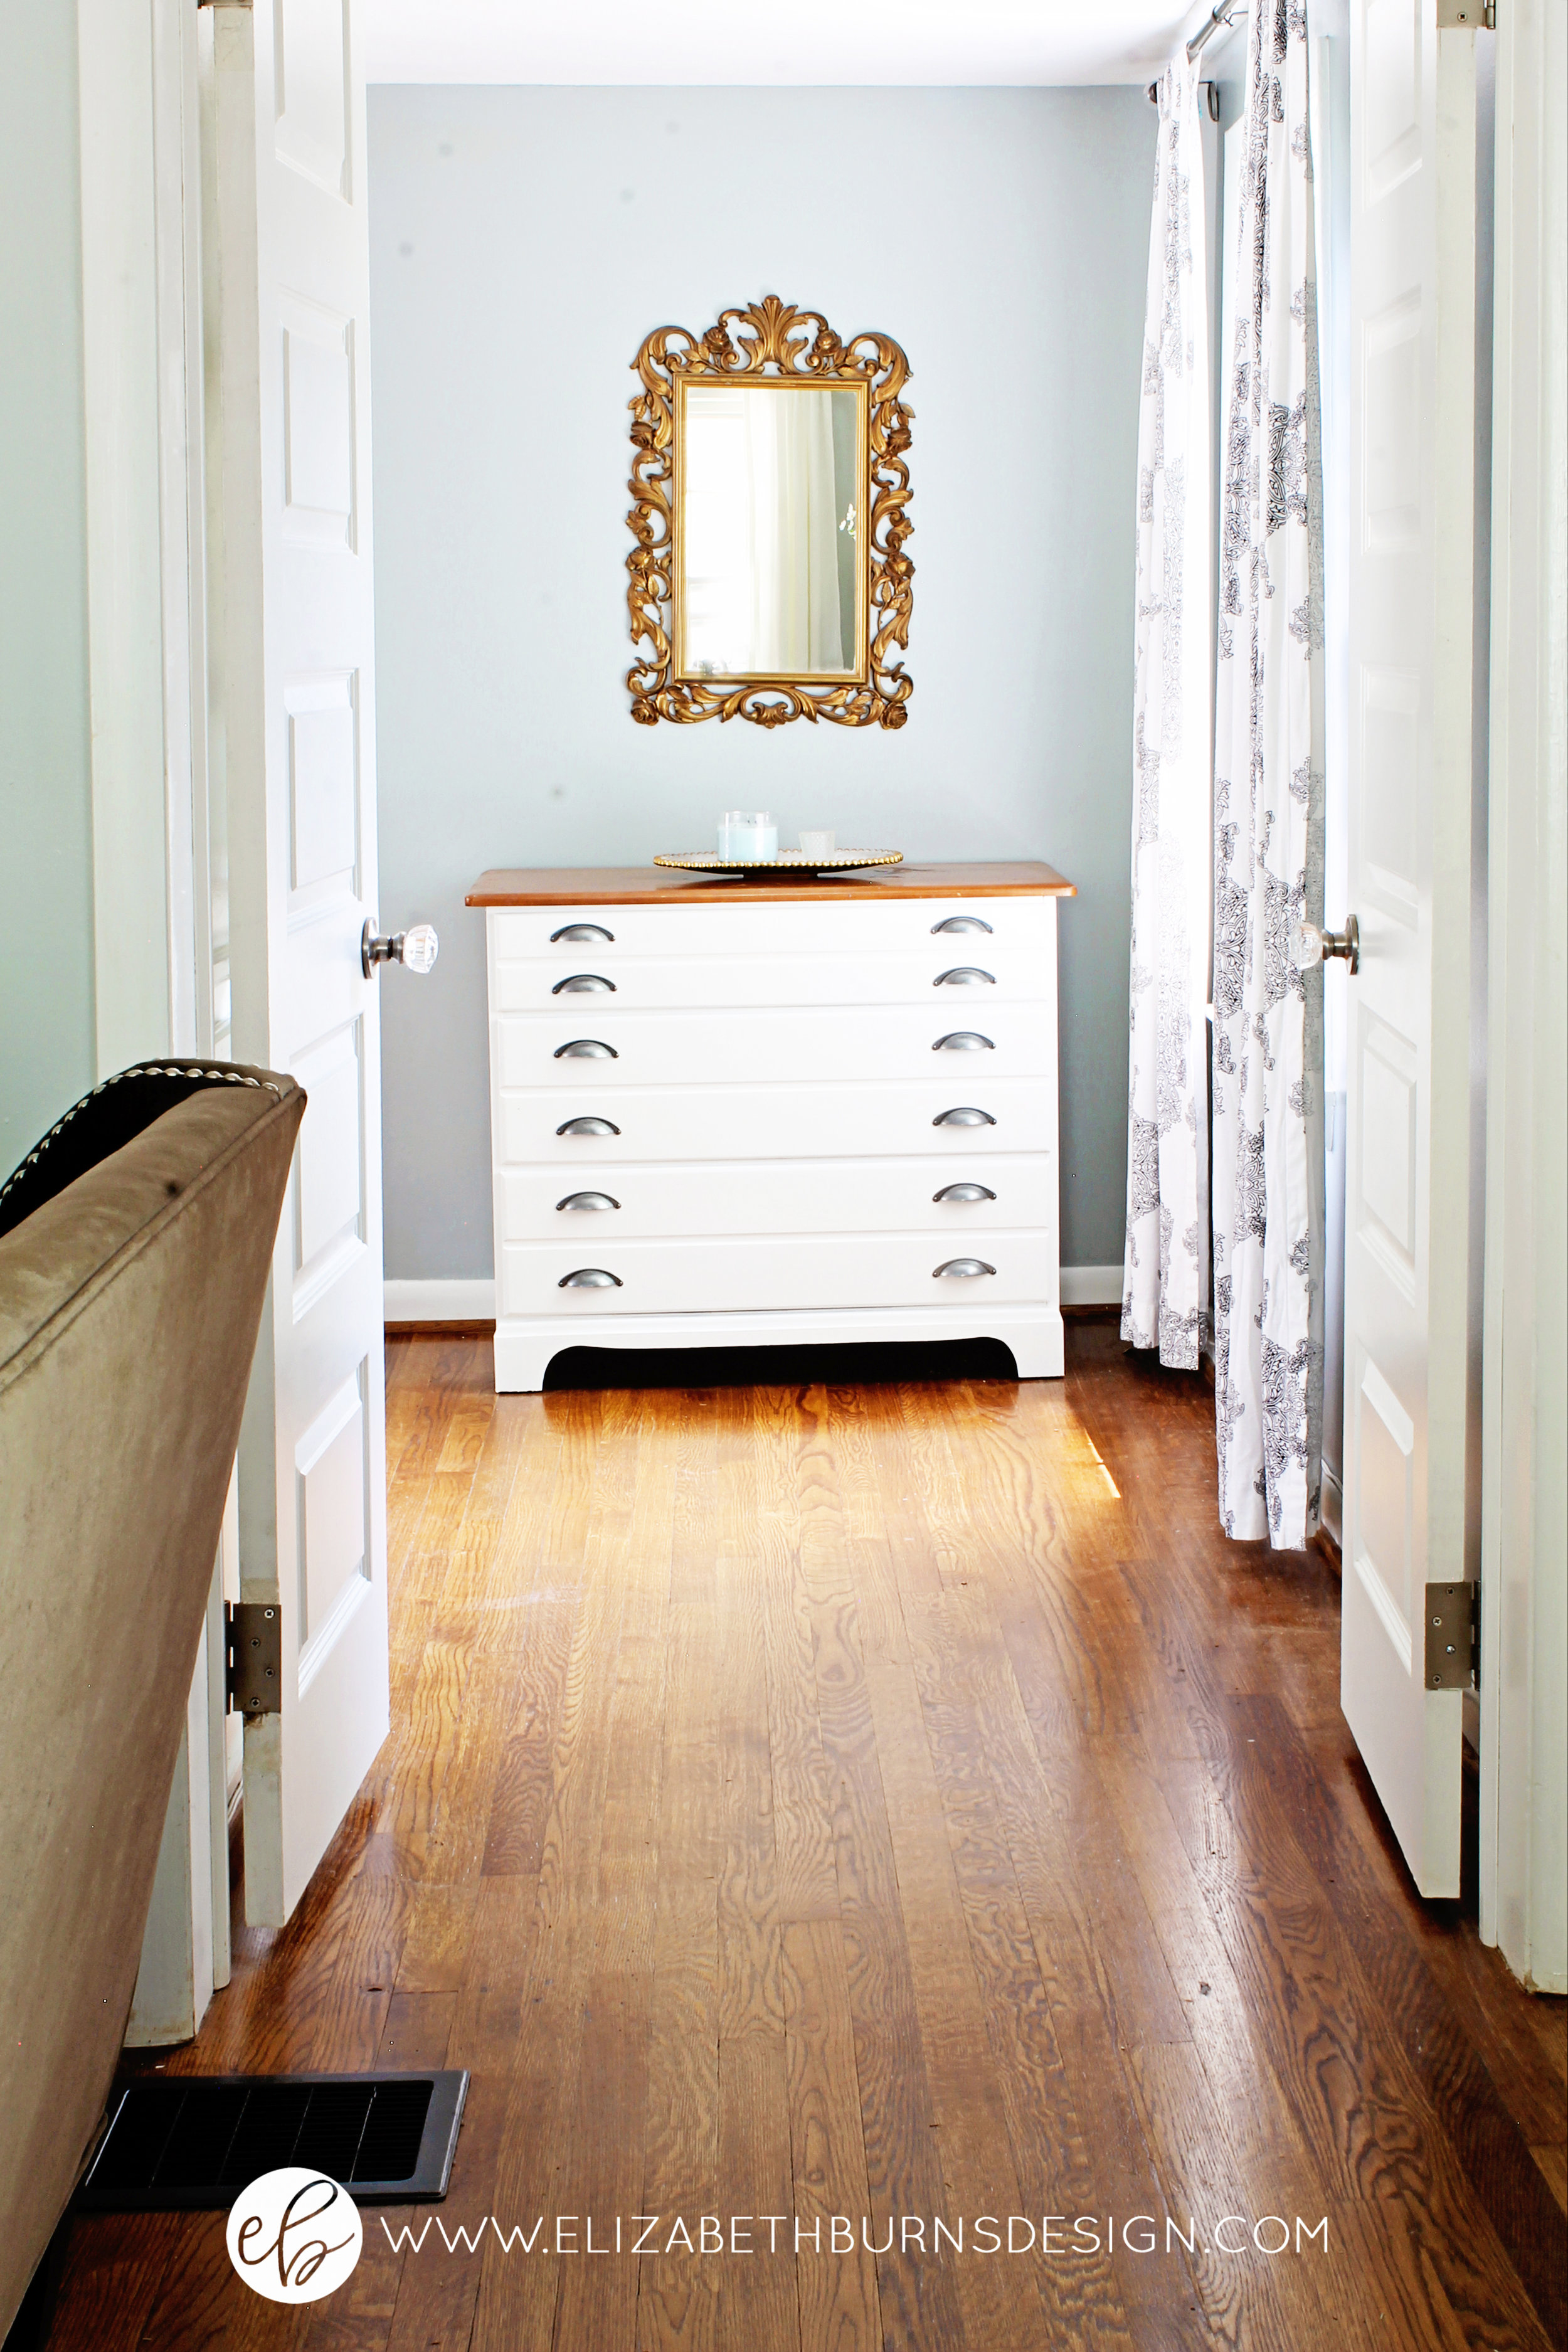 Elizabeth Burns Design | SW Magnetic Gray Sherwin Williams, Raleigh Interior Design, Small House Decorating, Staging, DIY, Design on a Budget, Tiny House, Fixer Upper Style, Farmhouse Look